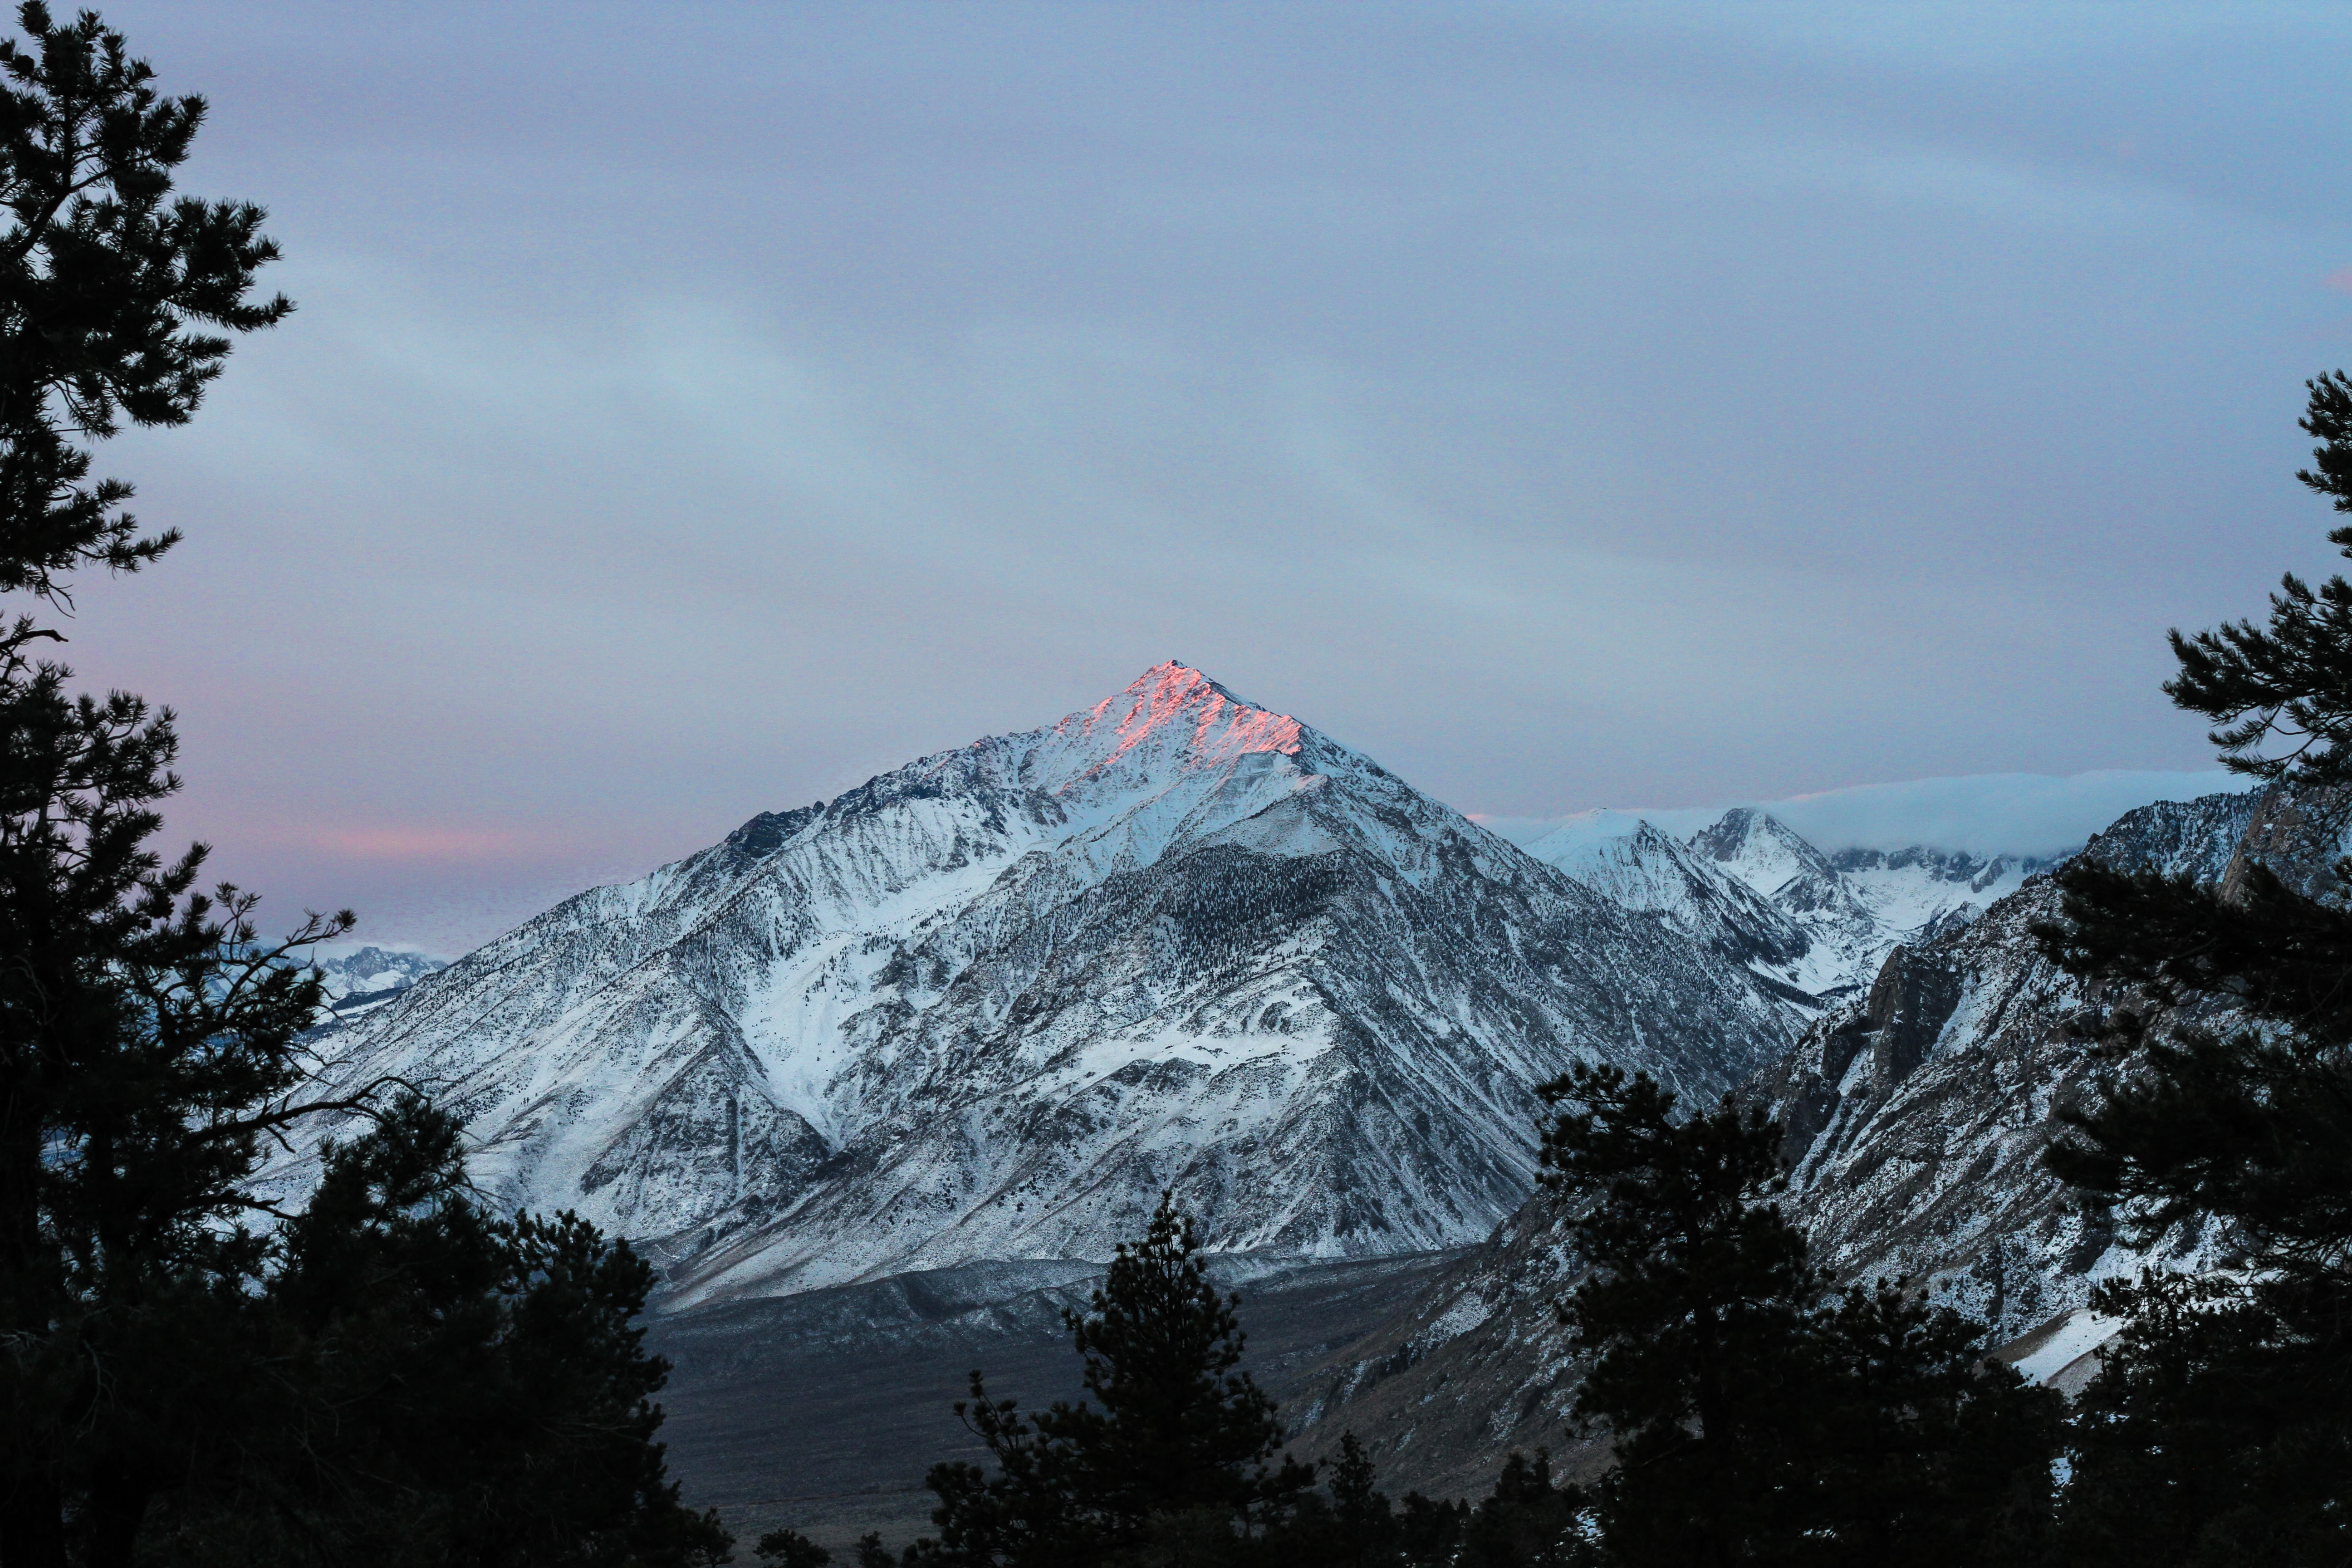 The peak of the tall Mount Whitney bathed in red sunshine during sunset